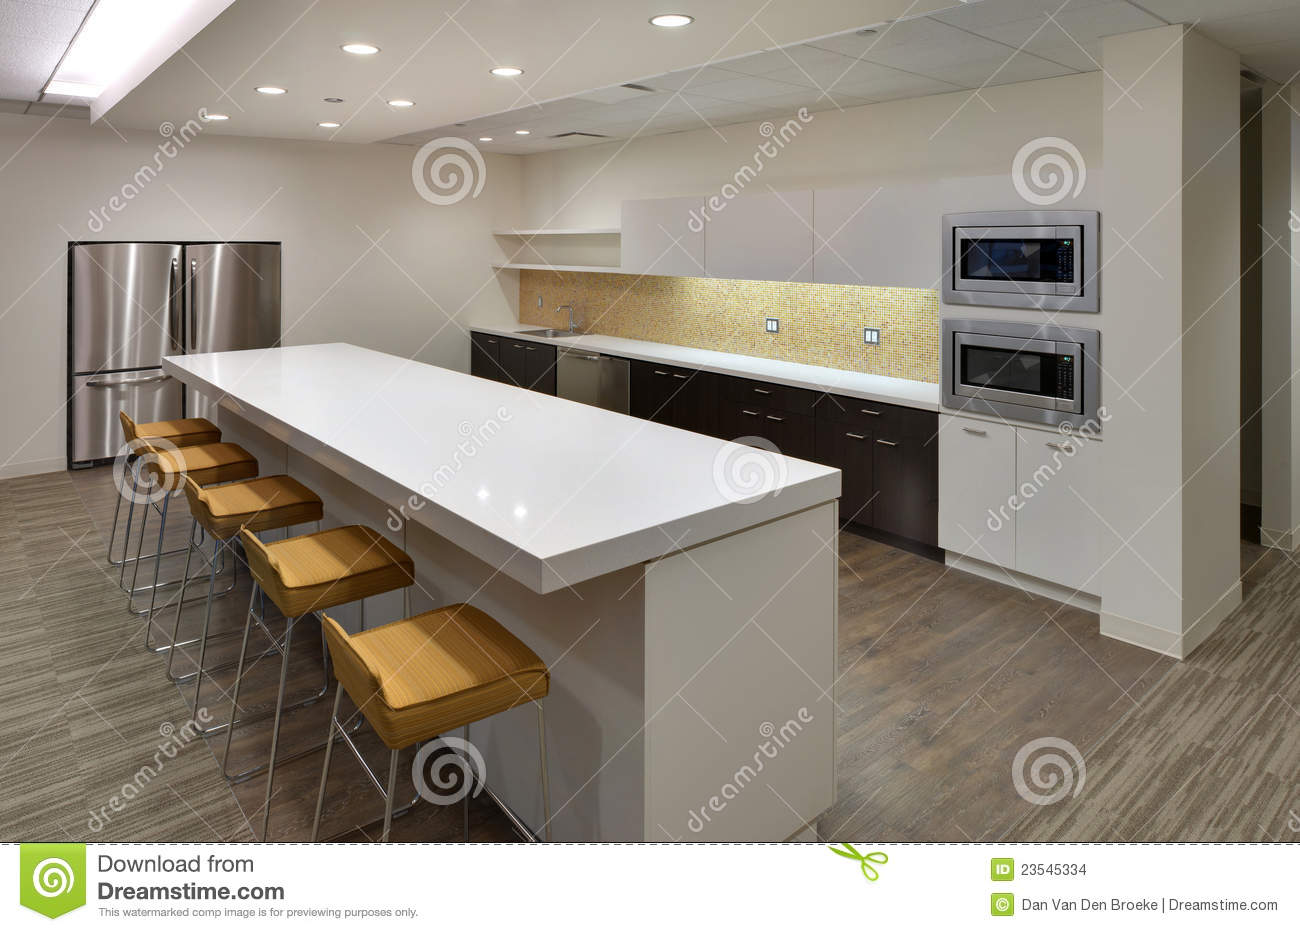 Clean Modern Community Lunch Room Stock Photo Image Of Dining Contemporary 23545334